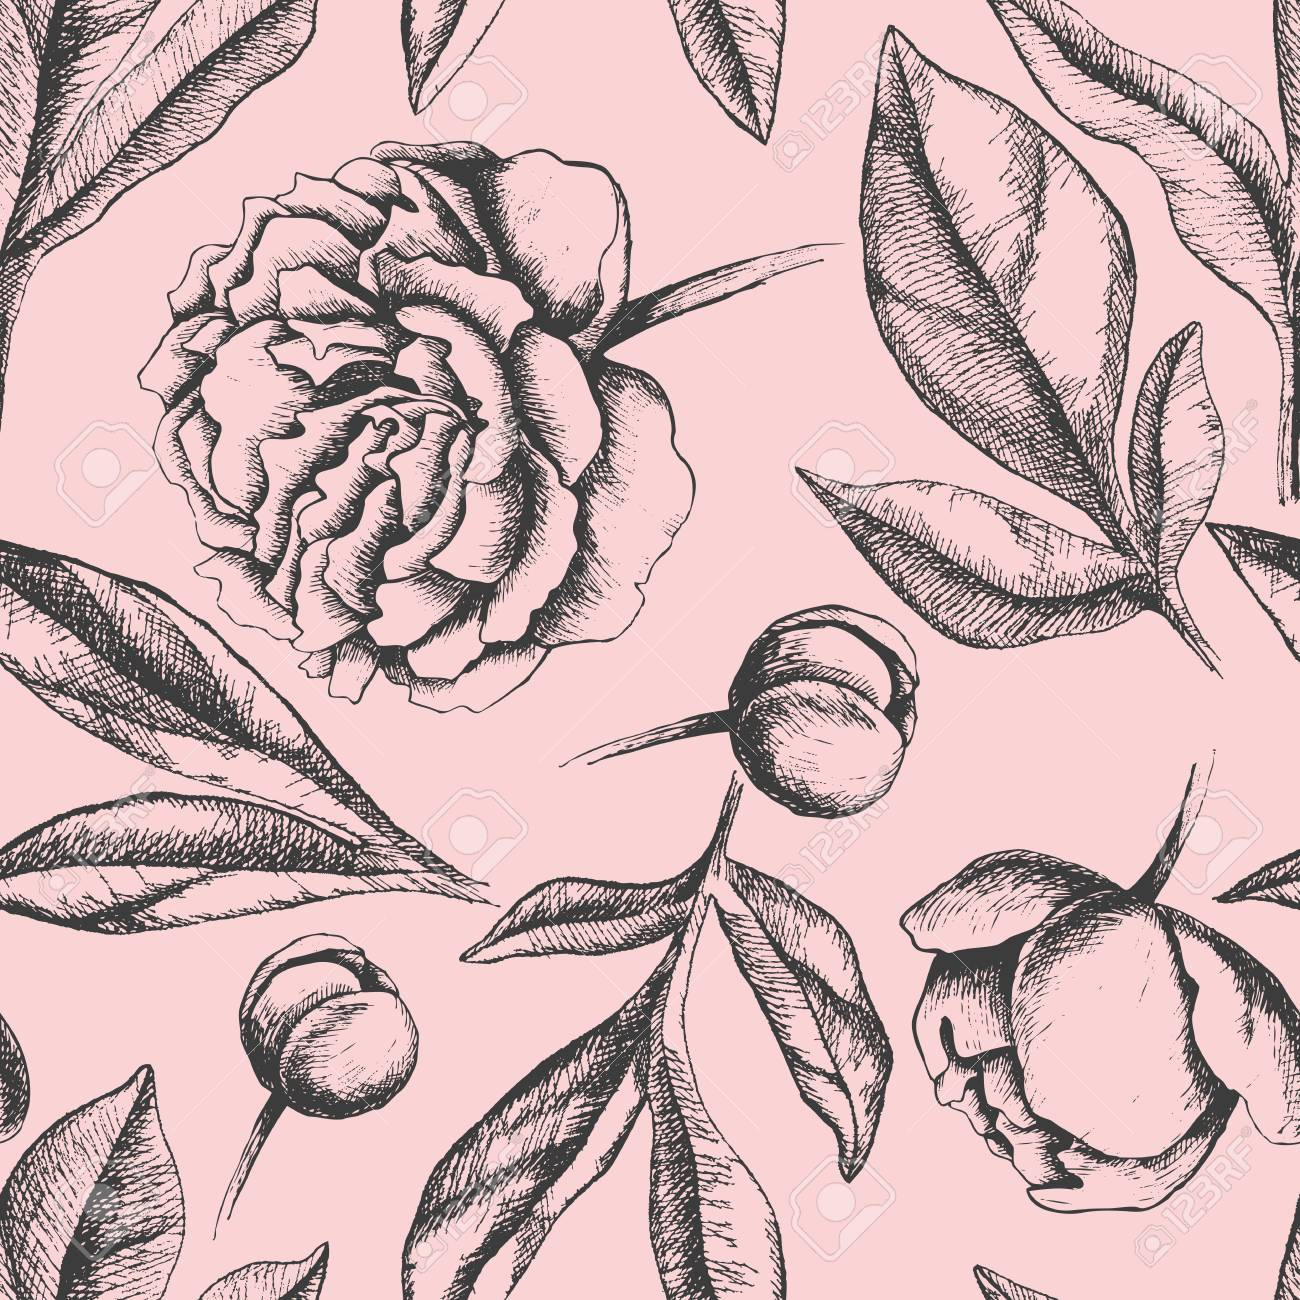 Vintage Elegant Pattern With Peony Flowers Black And White Ink